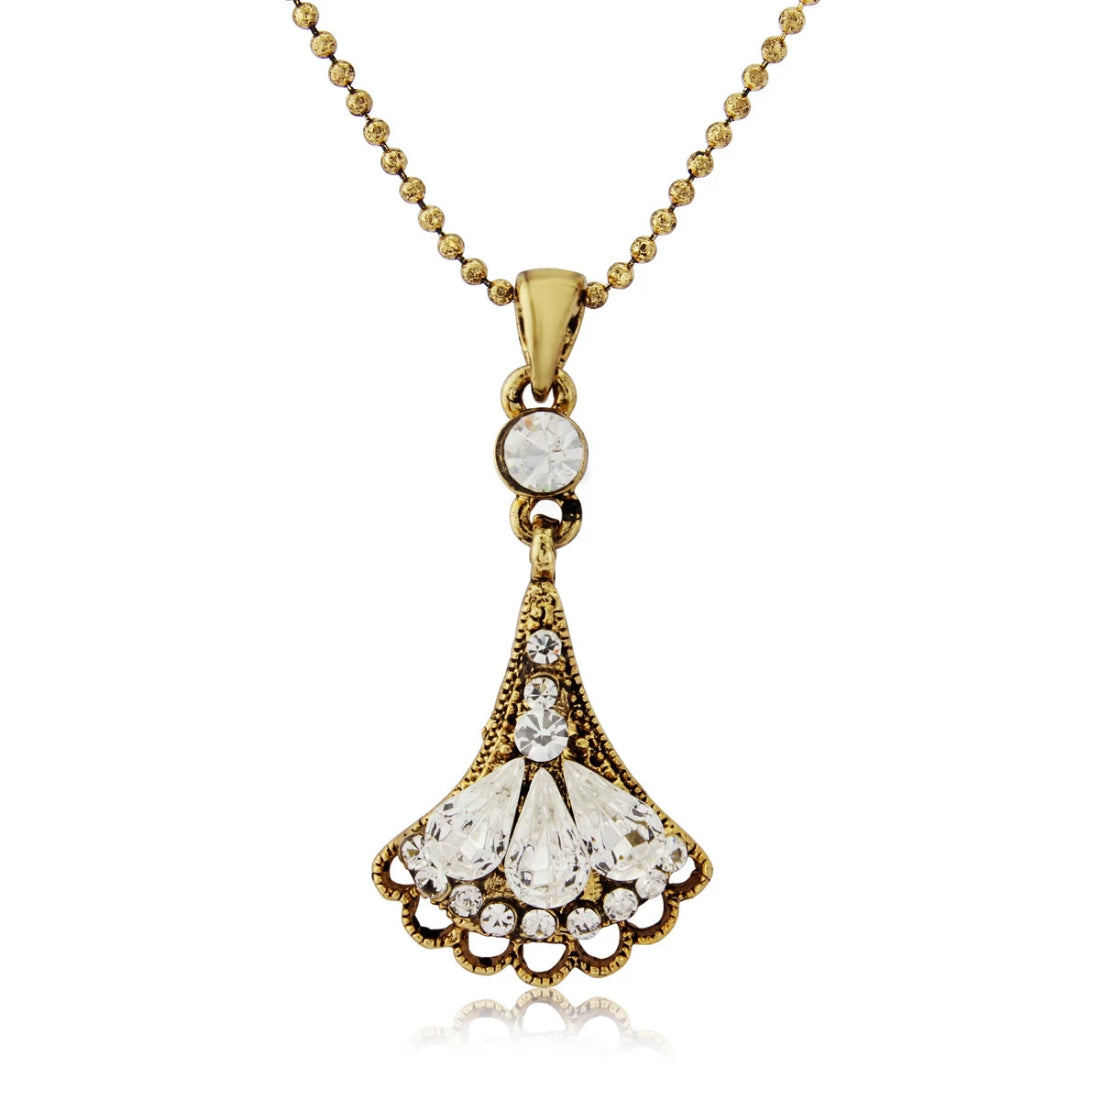 Glamour of Deco gold crystal pendant